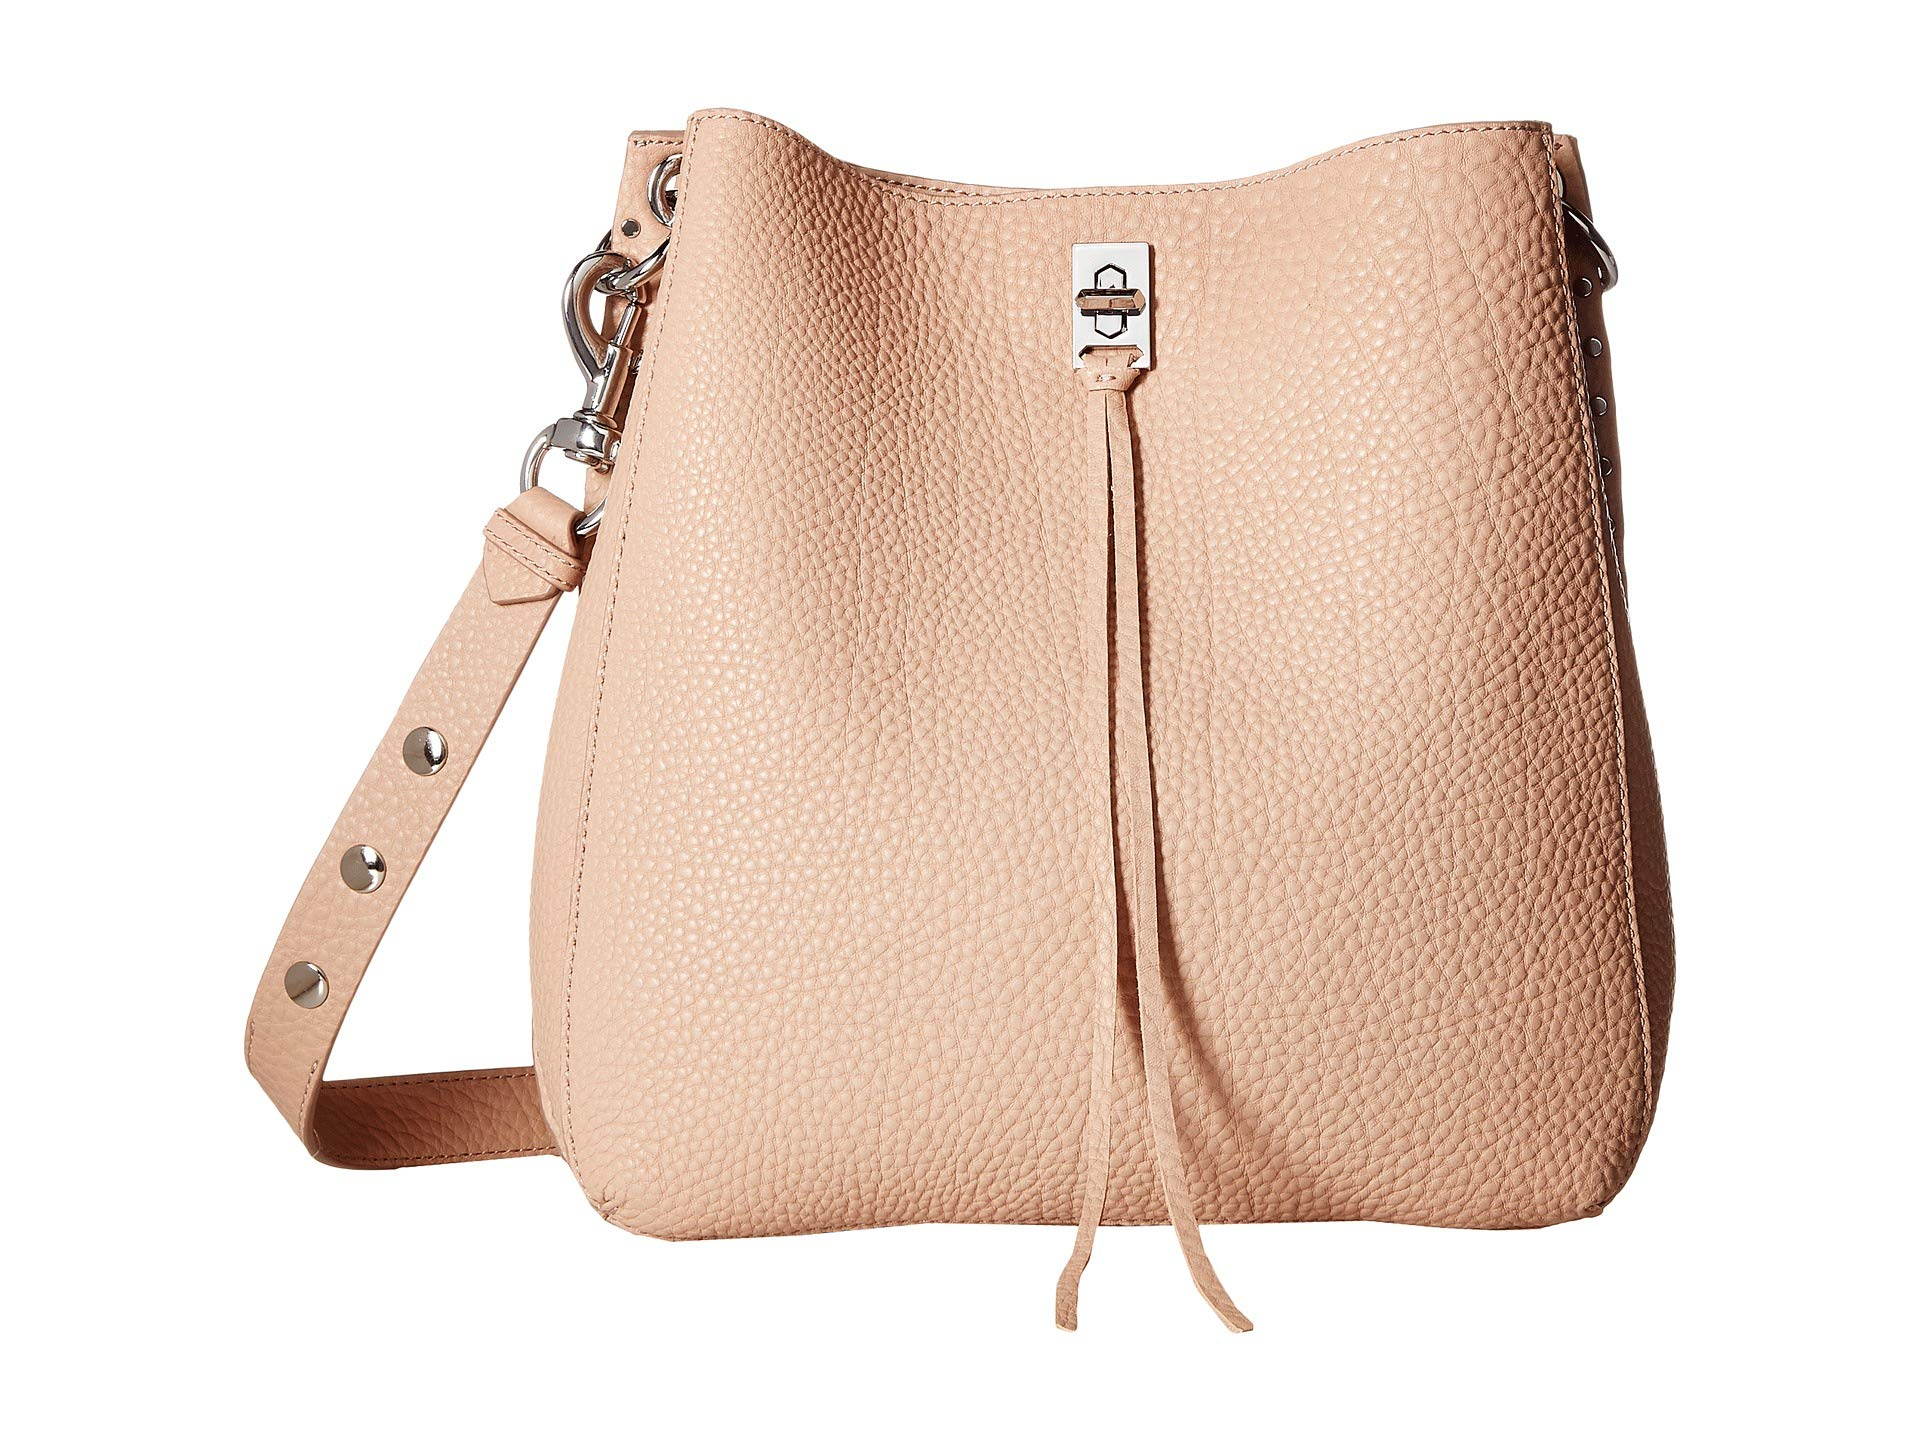 Minkoff Doe Shoulder Bag Darren Rebecca Ygqd44